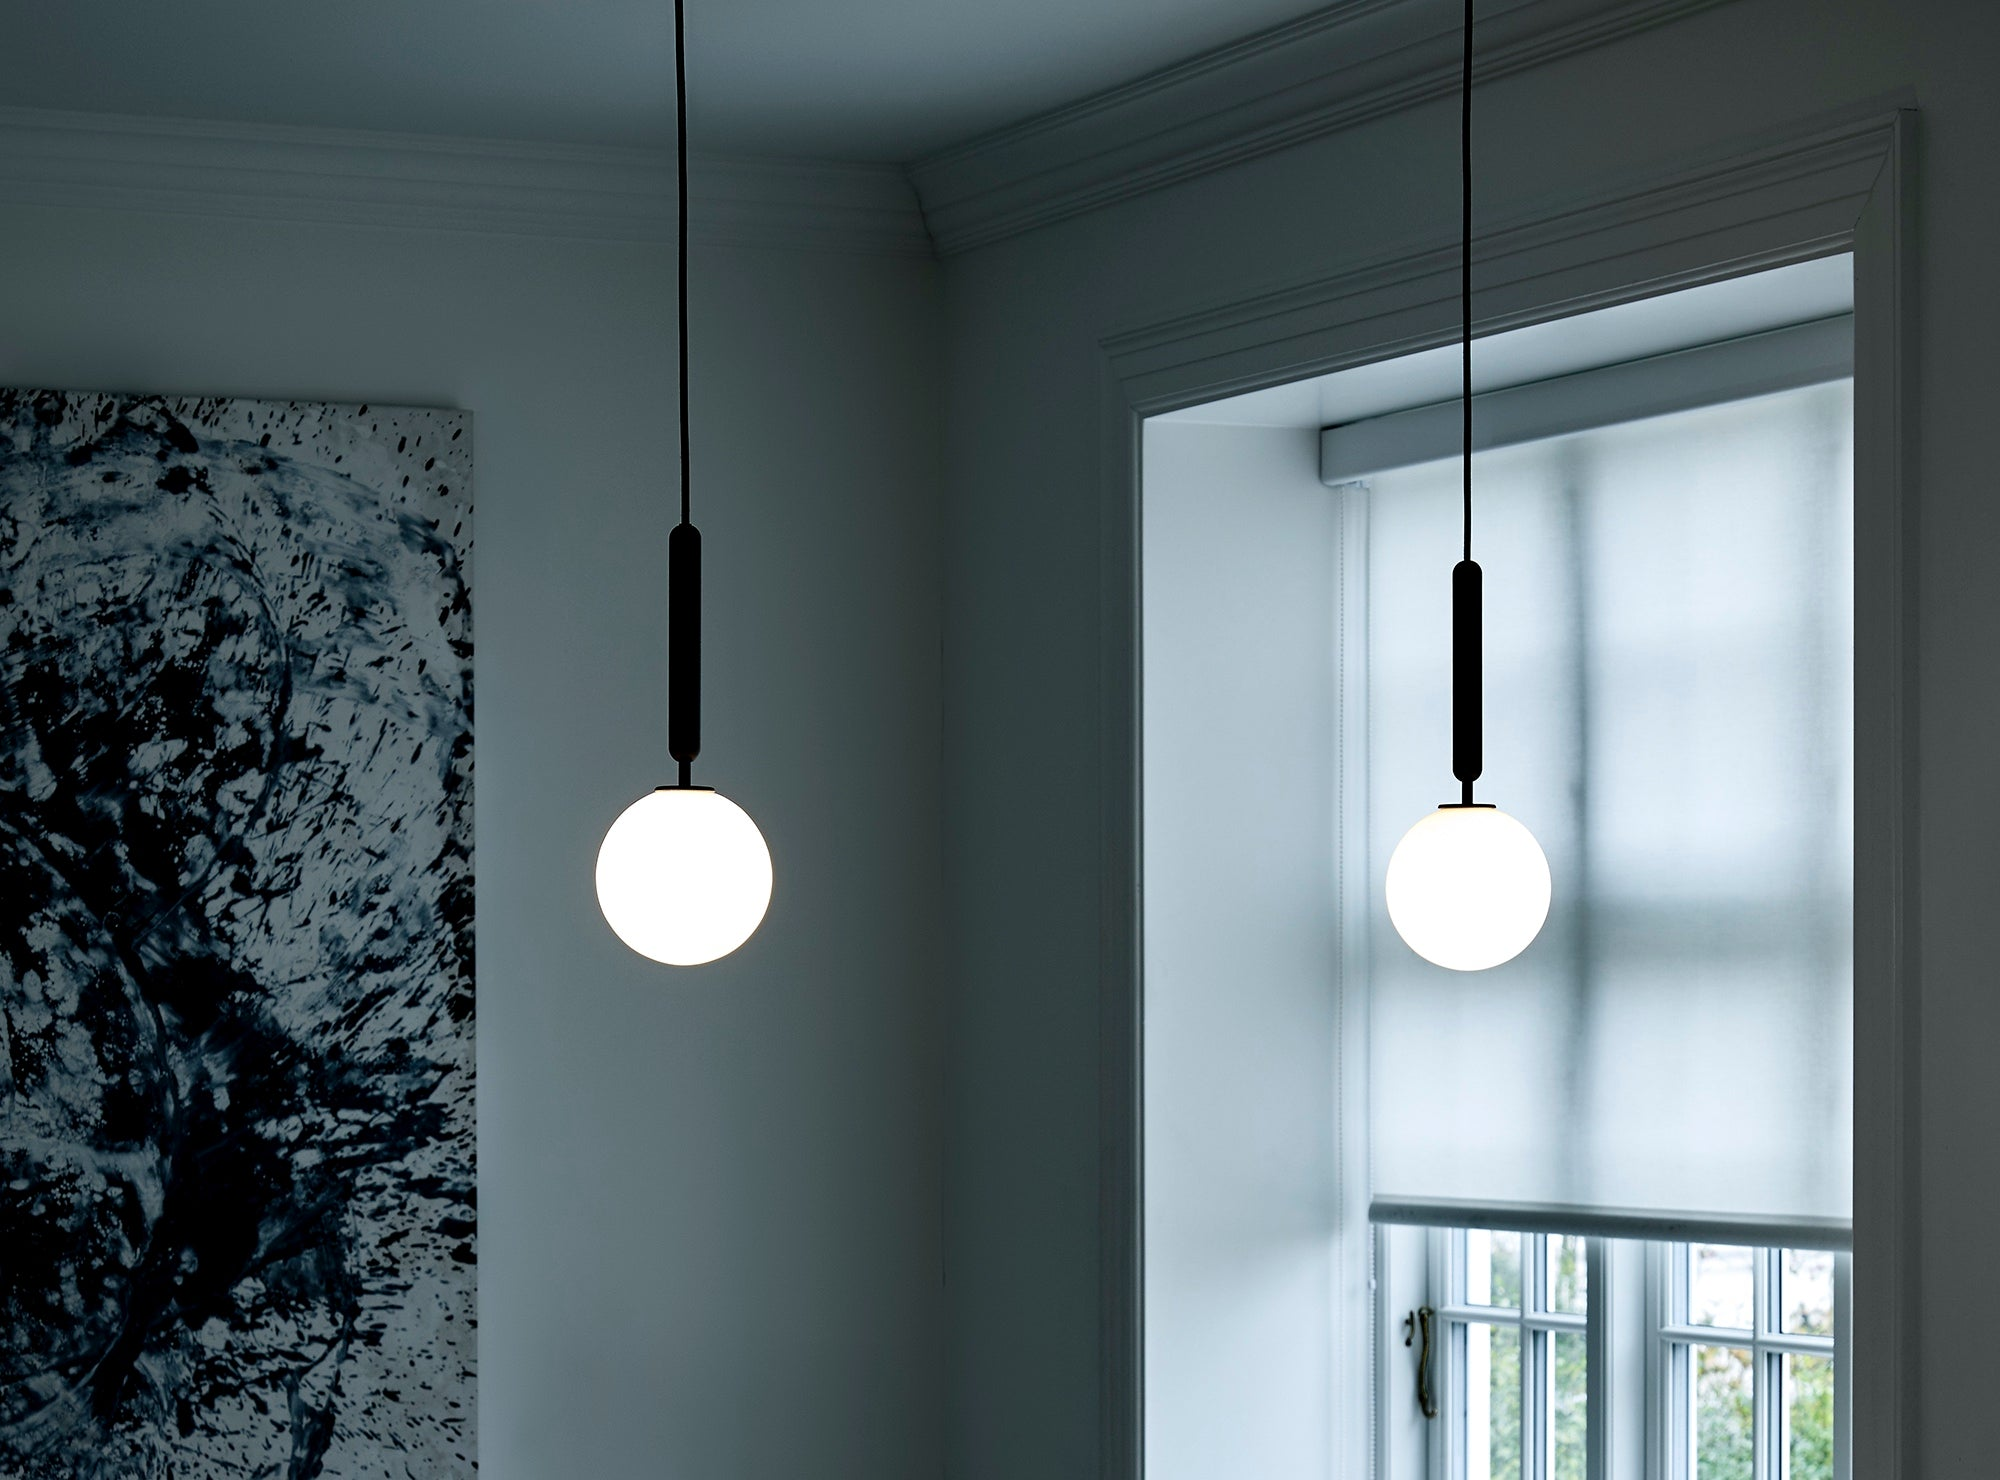 Subscription_OMNI_two_Nuura_Miira_1_Rock_&_Opal_Lamp_elegant_diffused_light_comfortable_poster_balance